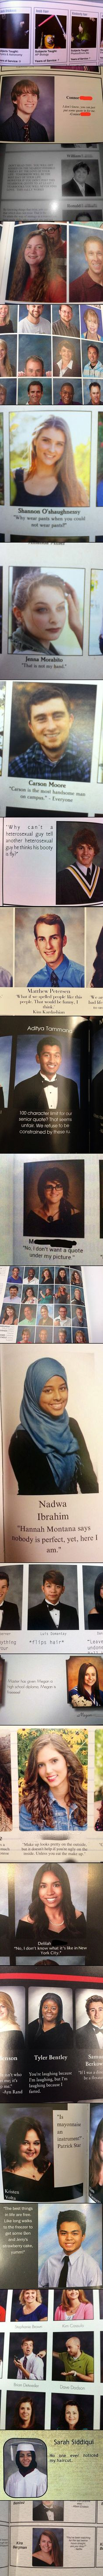 Here are some funny and geeky yearbook quotes, pictures that will make you look twice.